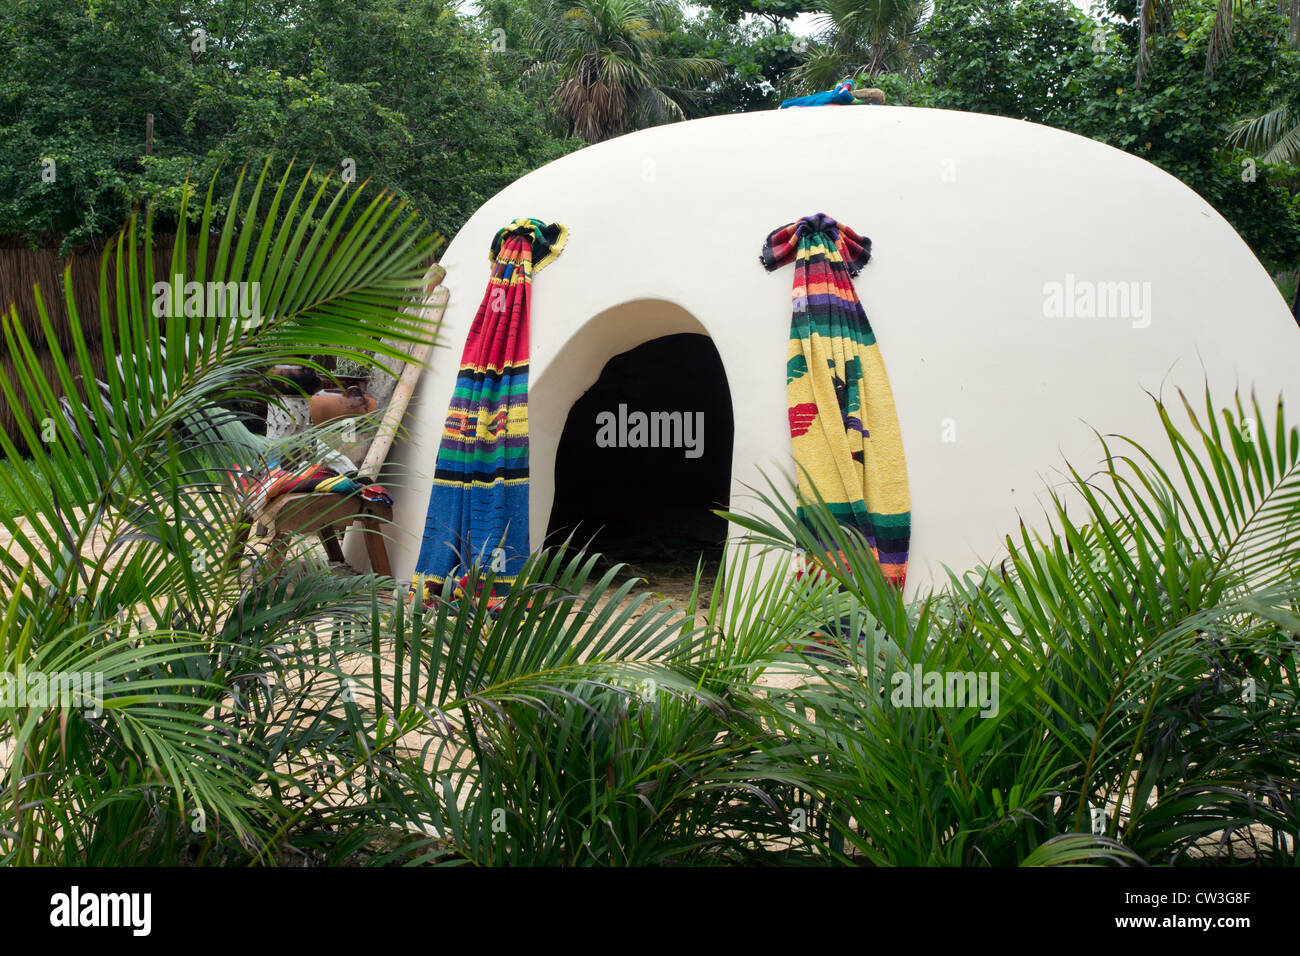 Temescal sweat lodge, an adobe style building used as a sweat lodge or sauna  for spiritual uses - Stock Image